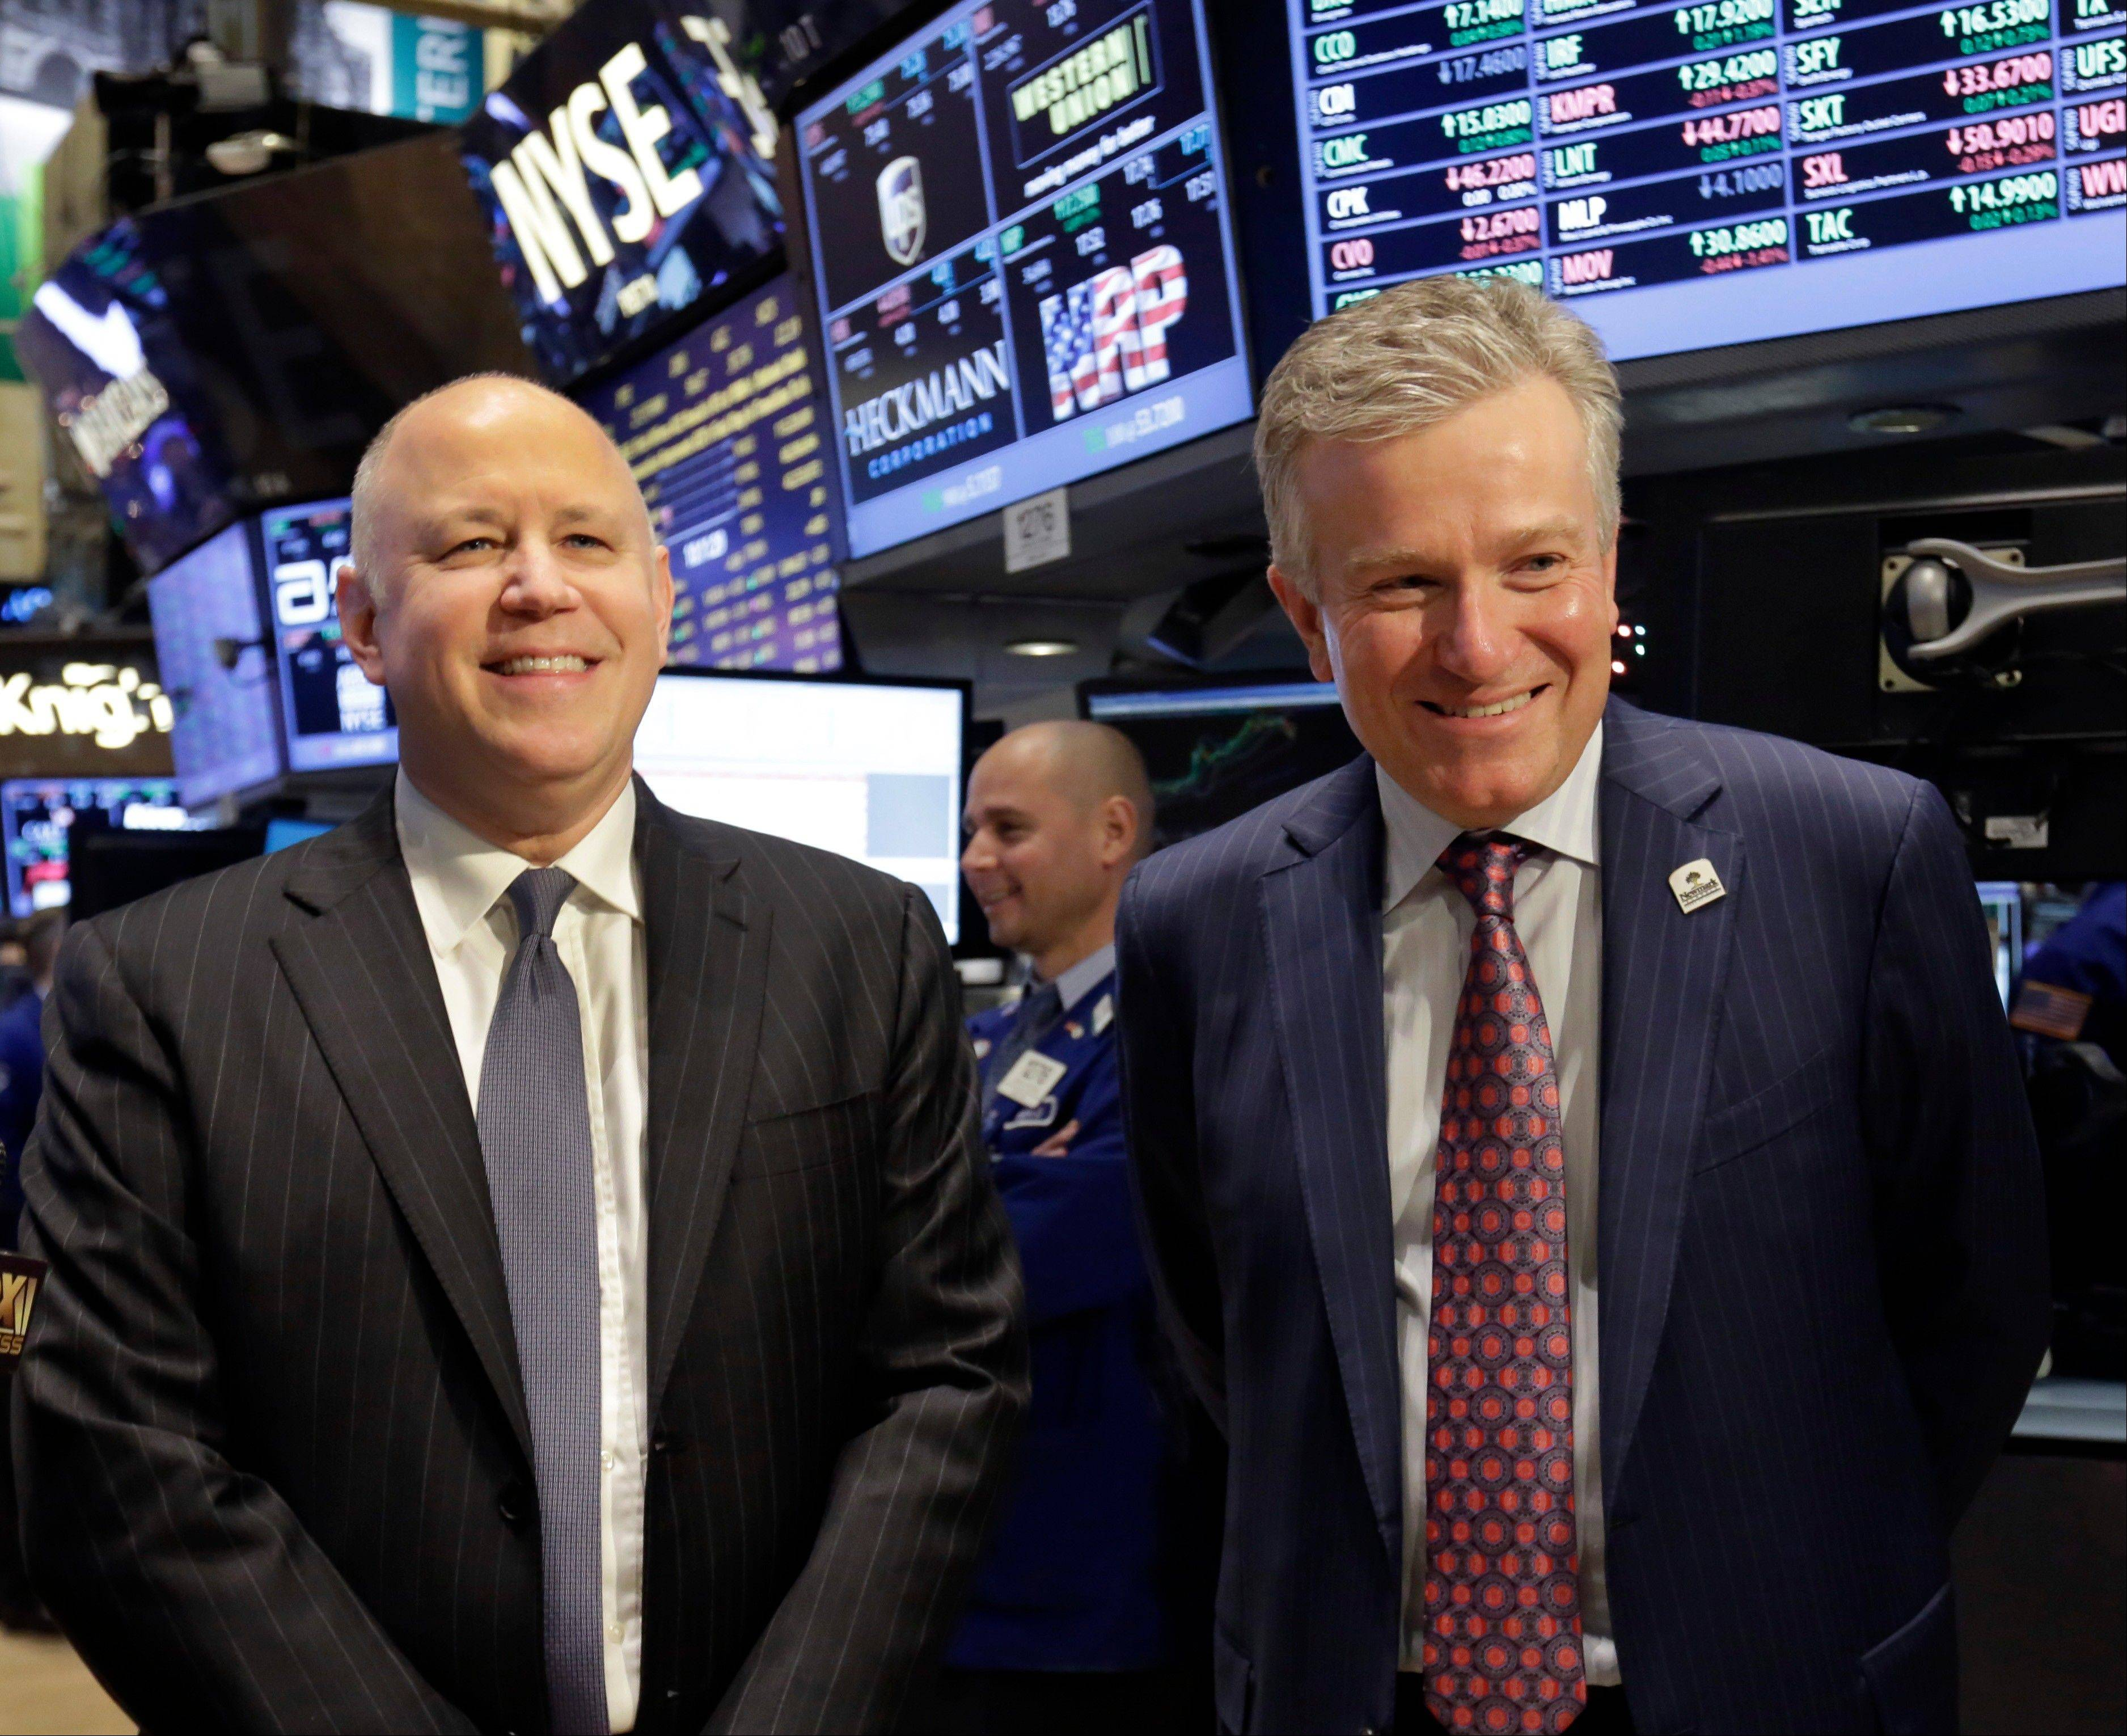 Intercontinental Exchange Inc. Chairman and CEO Jeffrey Sprecher, left, and NYSE CEO Duncan Niederauer prepare for an interview on the floor of the New York Stock Exchange Thursday. The New York Stock Exchange is being sold to a rival exchange for about $8 billion, ending more than two centuries of independence for the iconic Big Board.